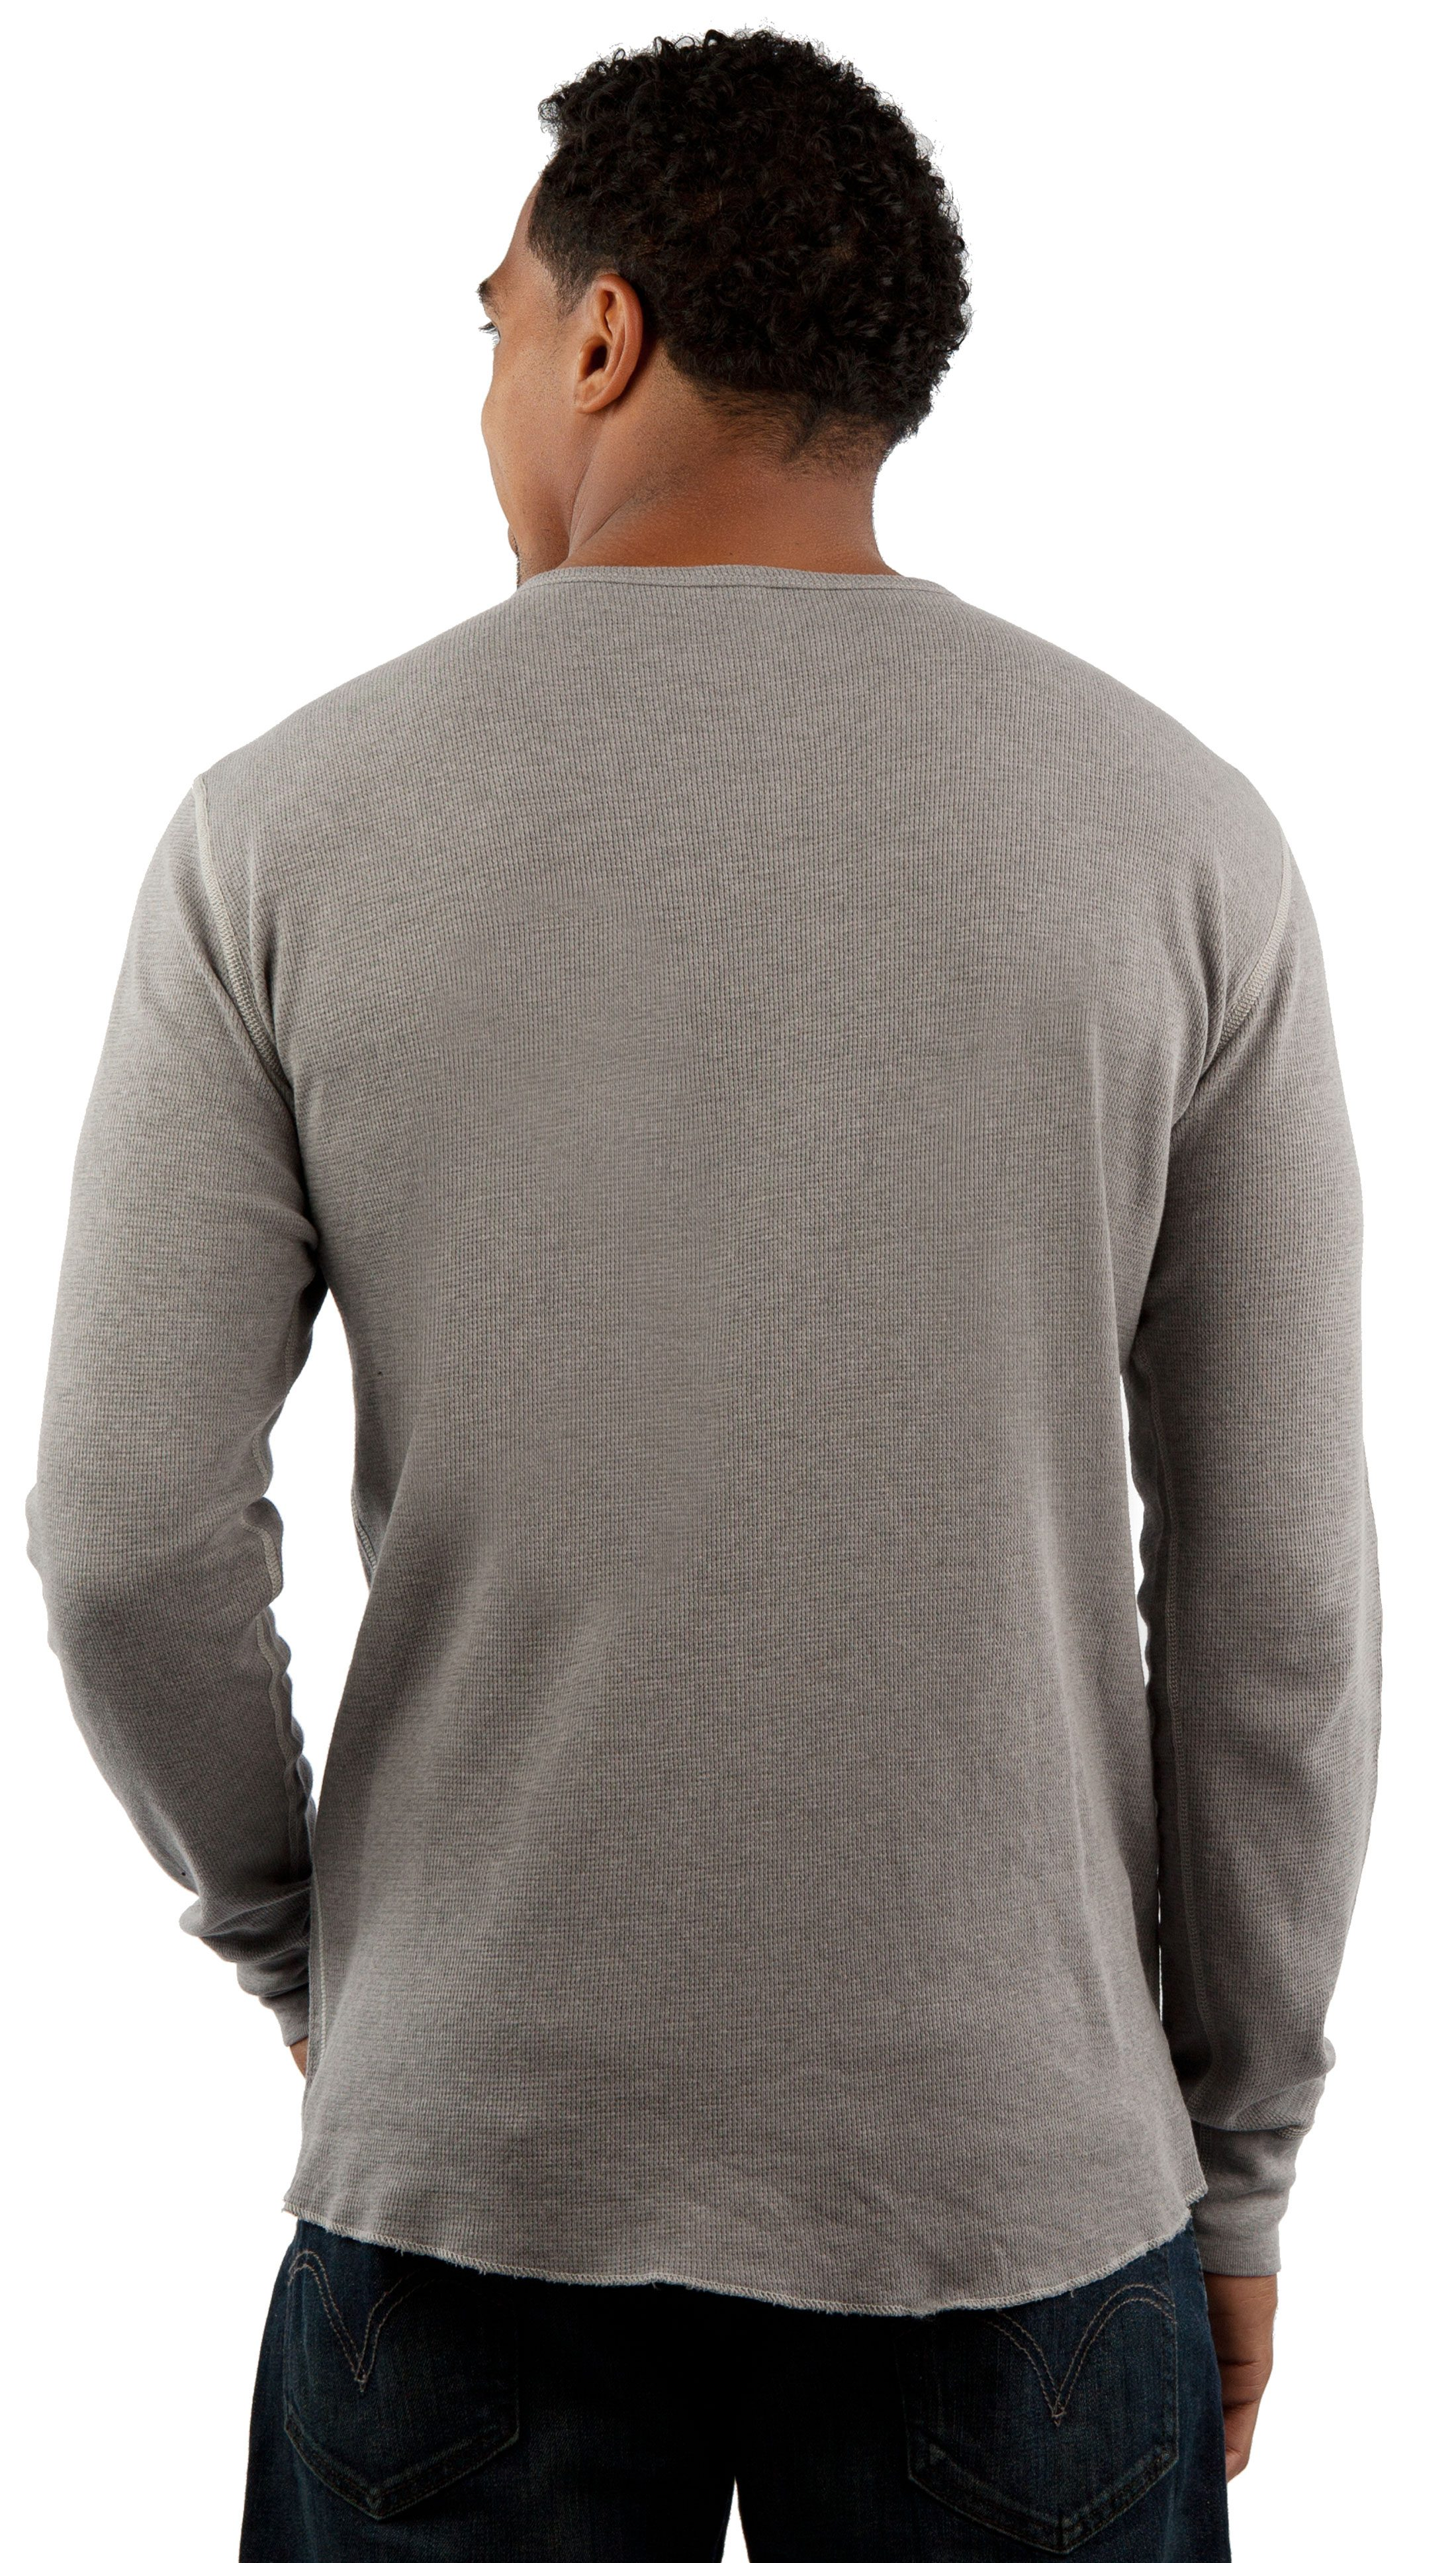 Vintage Long Sleeve Thermal T-Shirt Back View